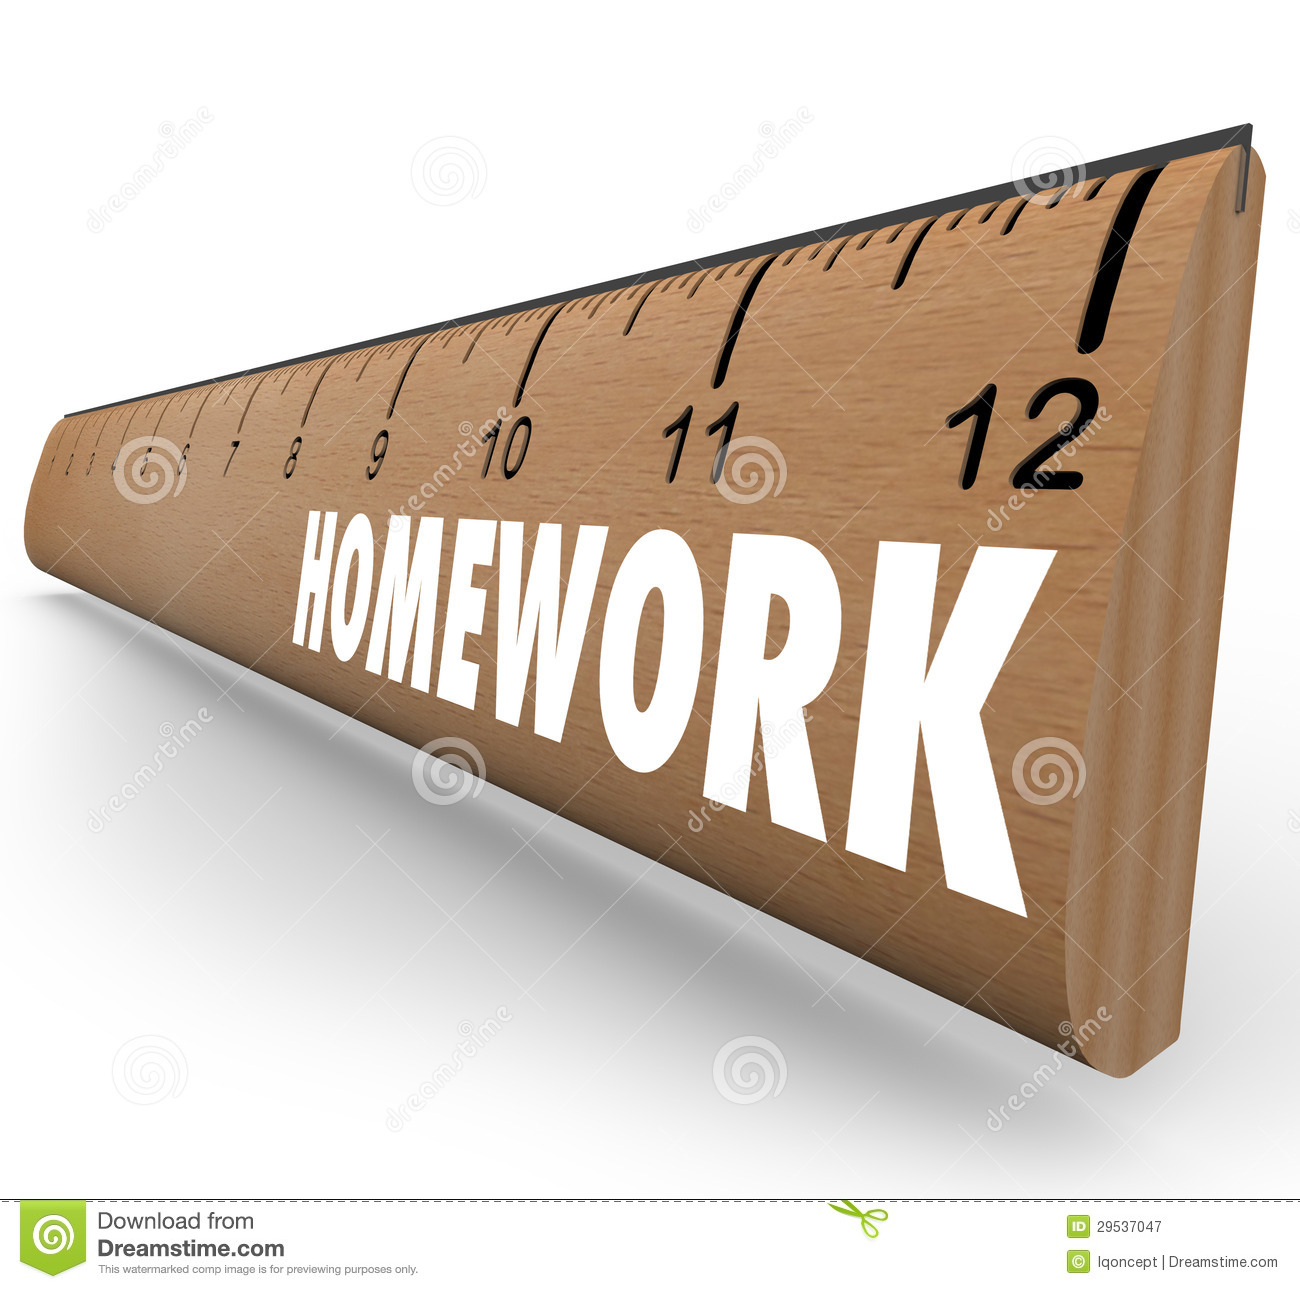 project homework help homework help history get help in your assignments from our gold medalist and industry experienced phd experts allhomeworkhelp provides online homework help and writing services